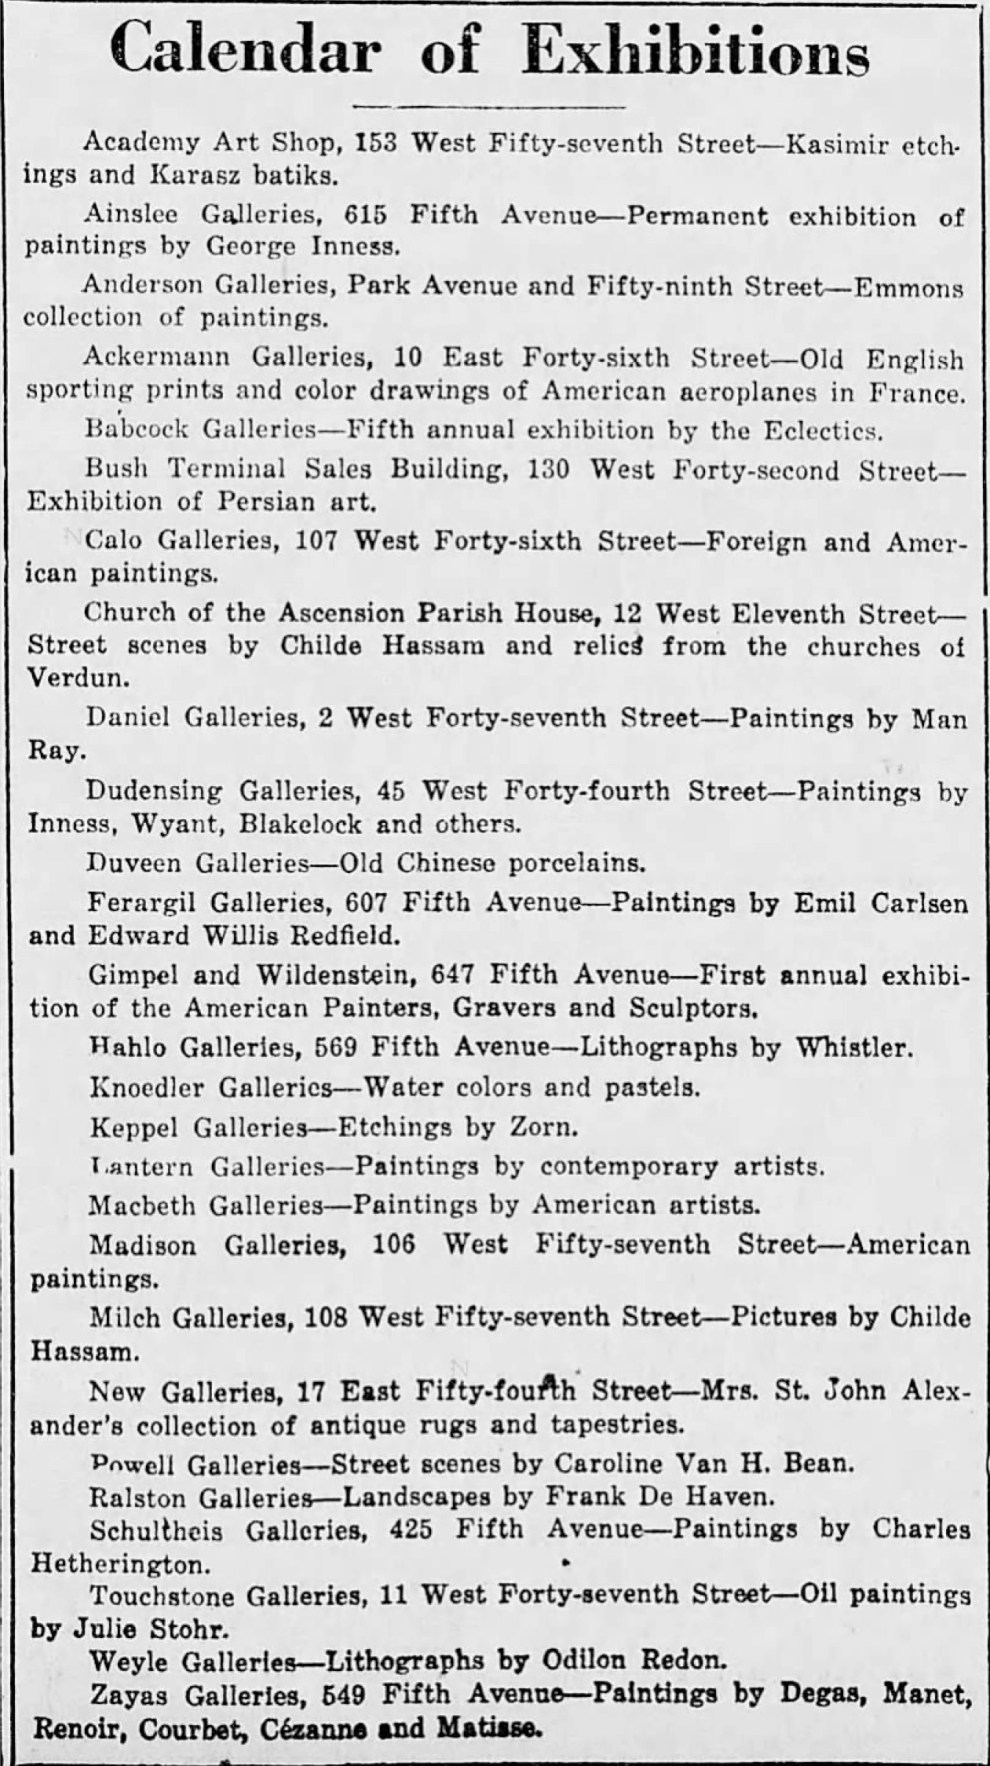 """New York Tribune, New York, NY, """"Calendar of exhibitions"""", Sunday, November 23, 1919, first edition, page 43, not illustrated."""